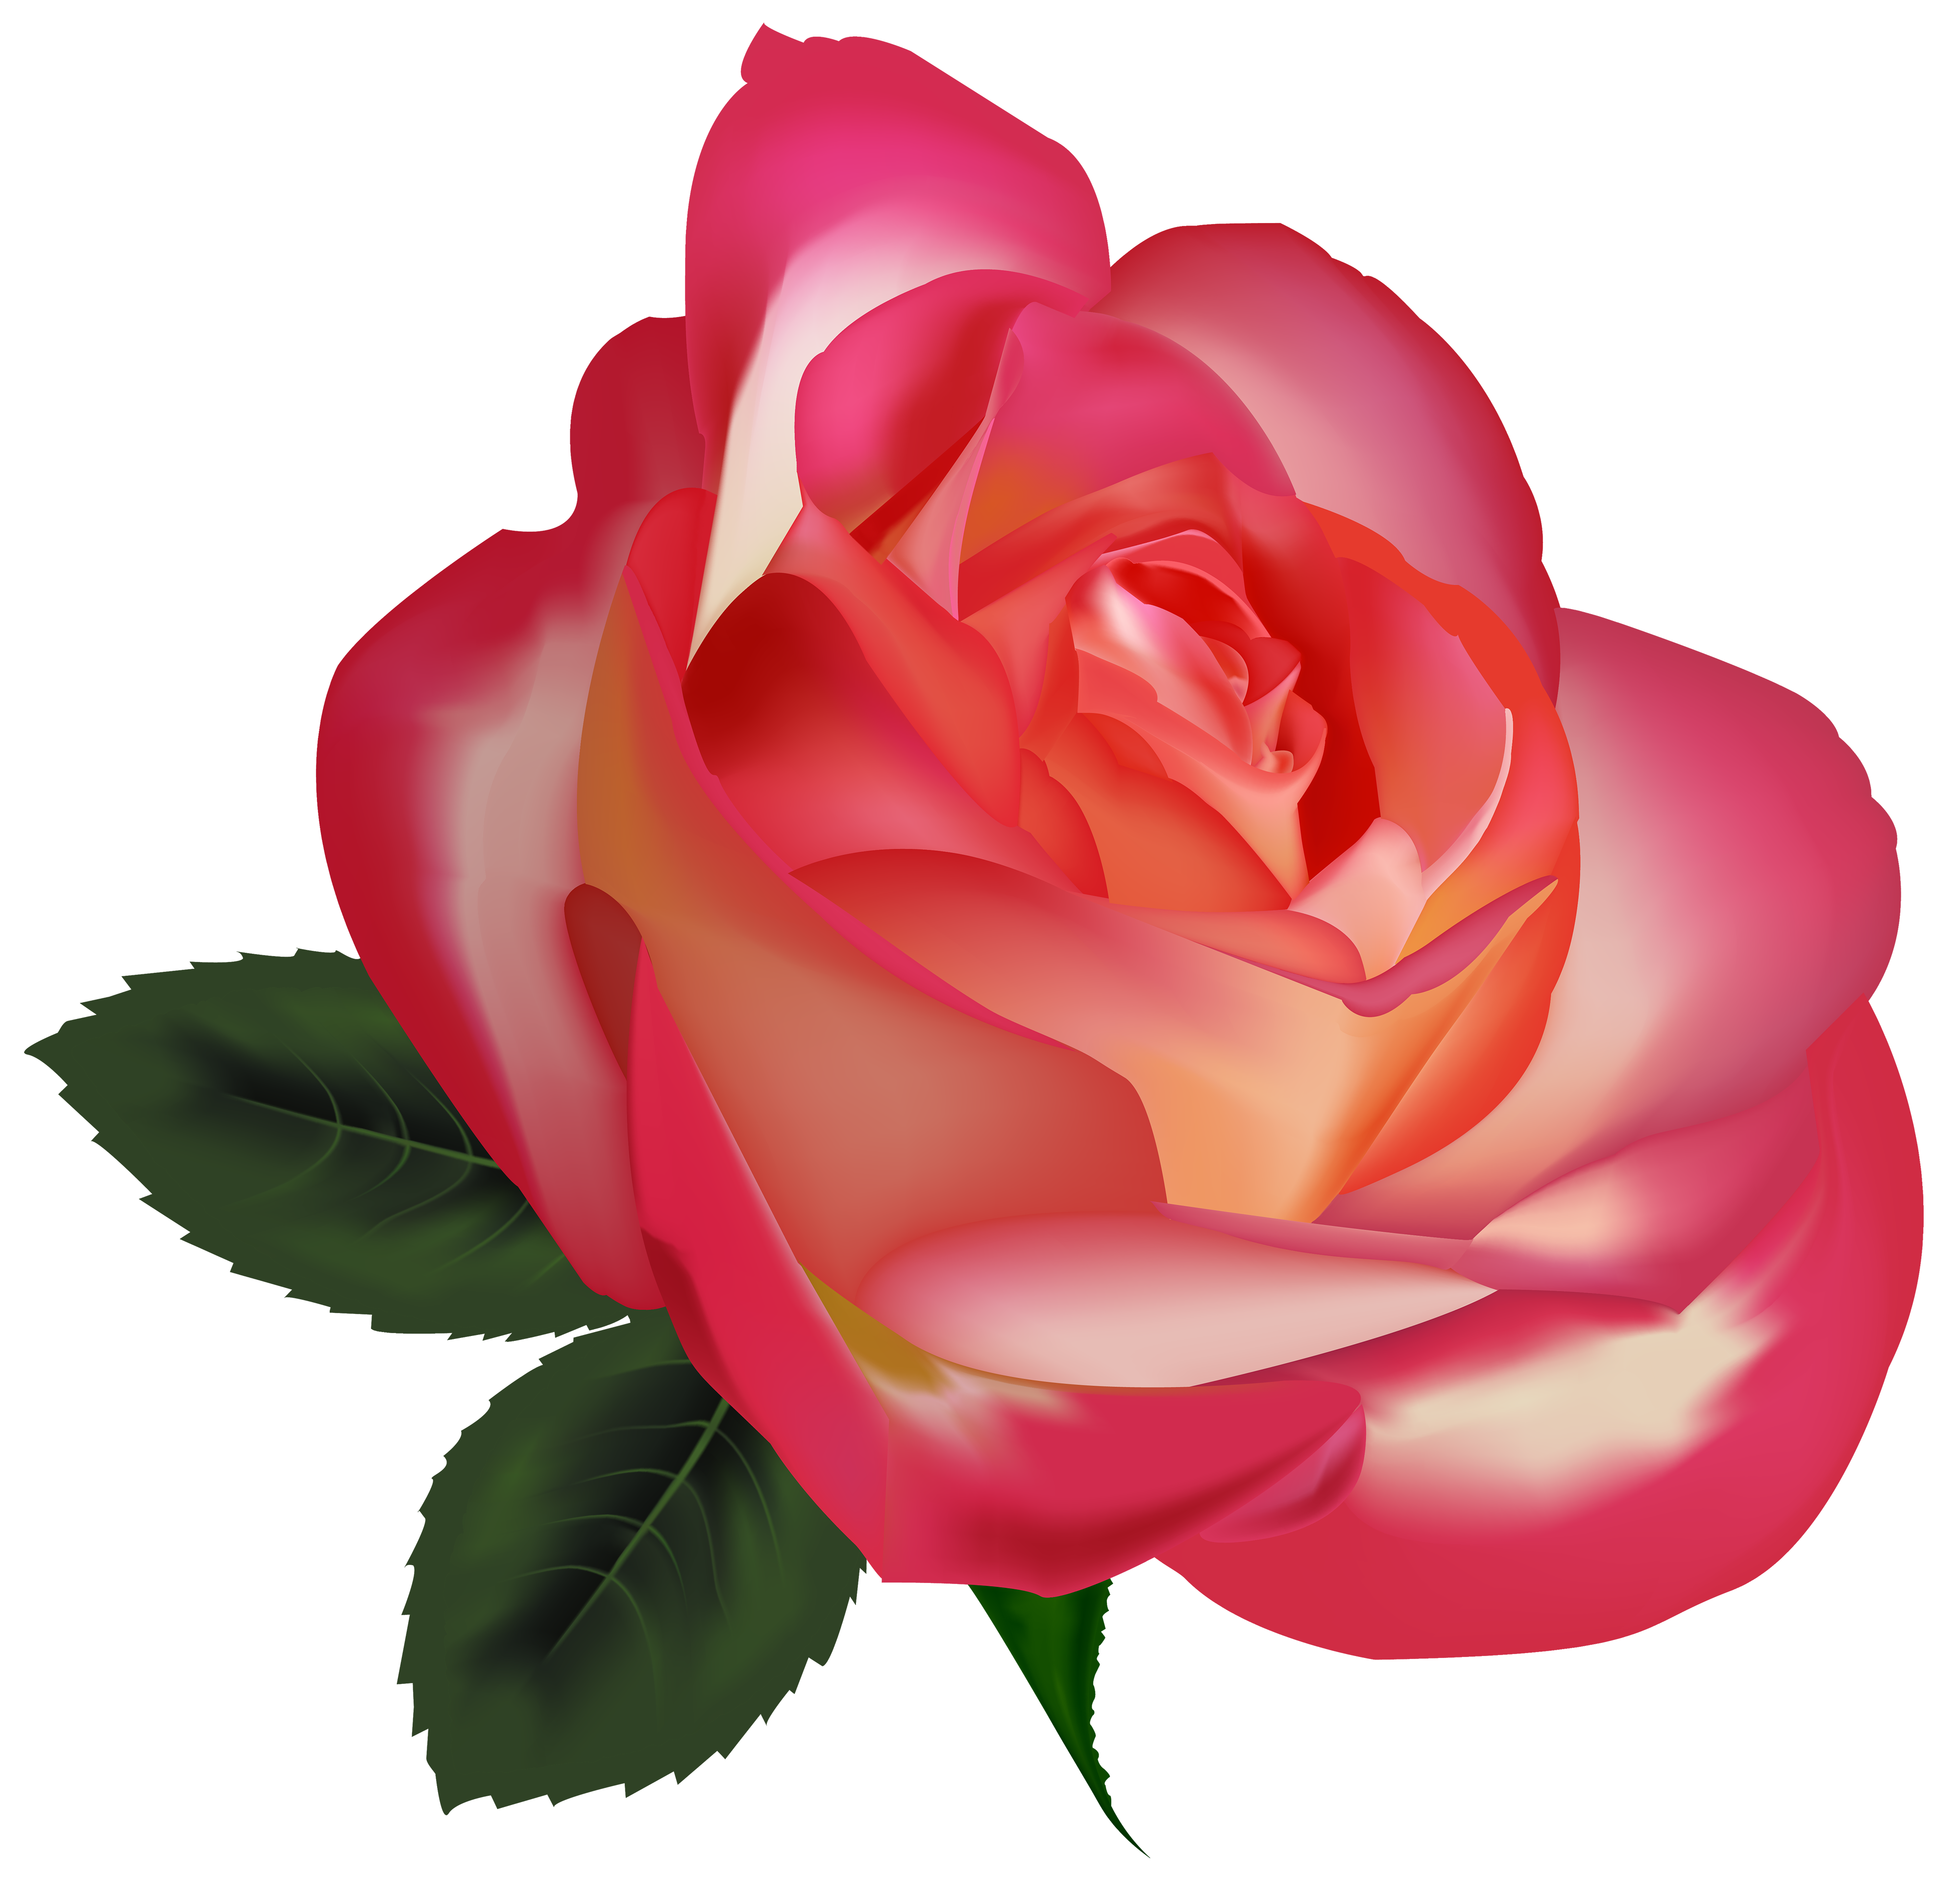 Beautiful Rose PNG Clipart Image.